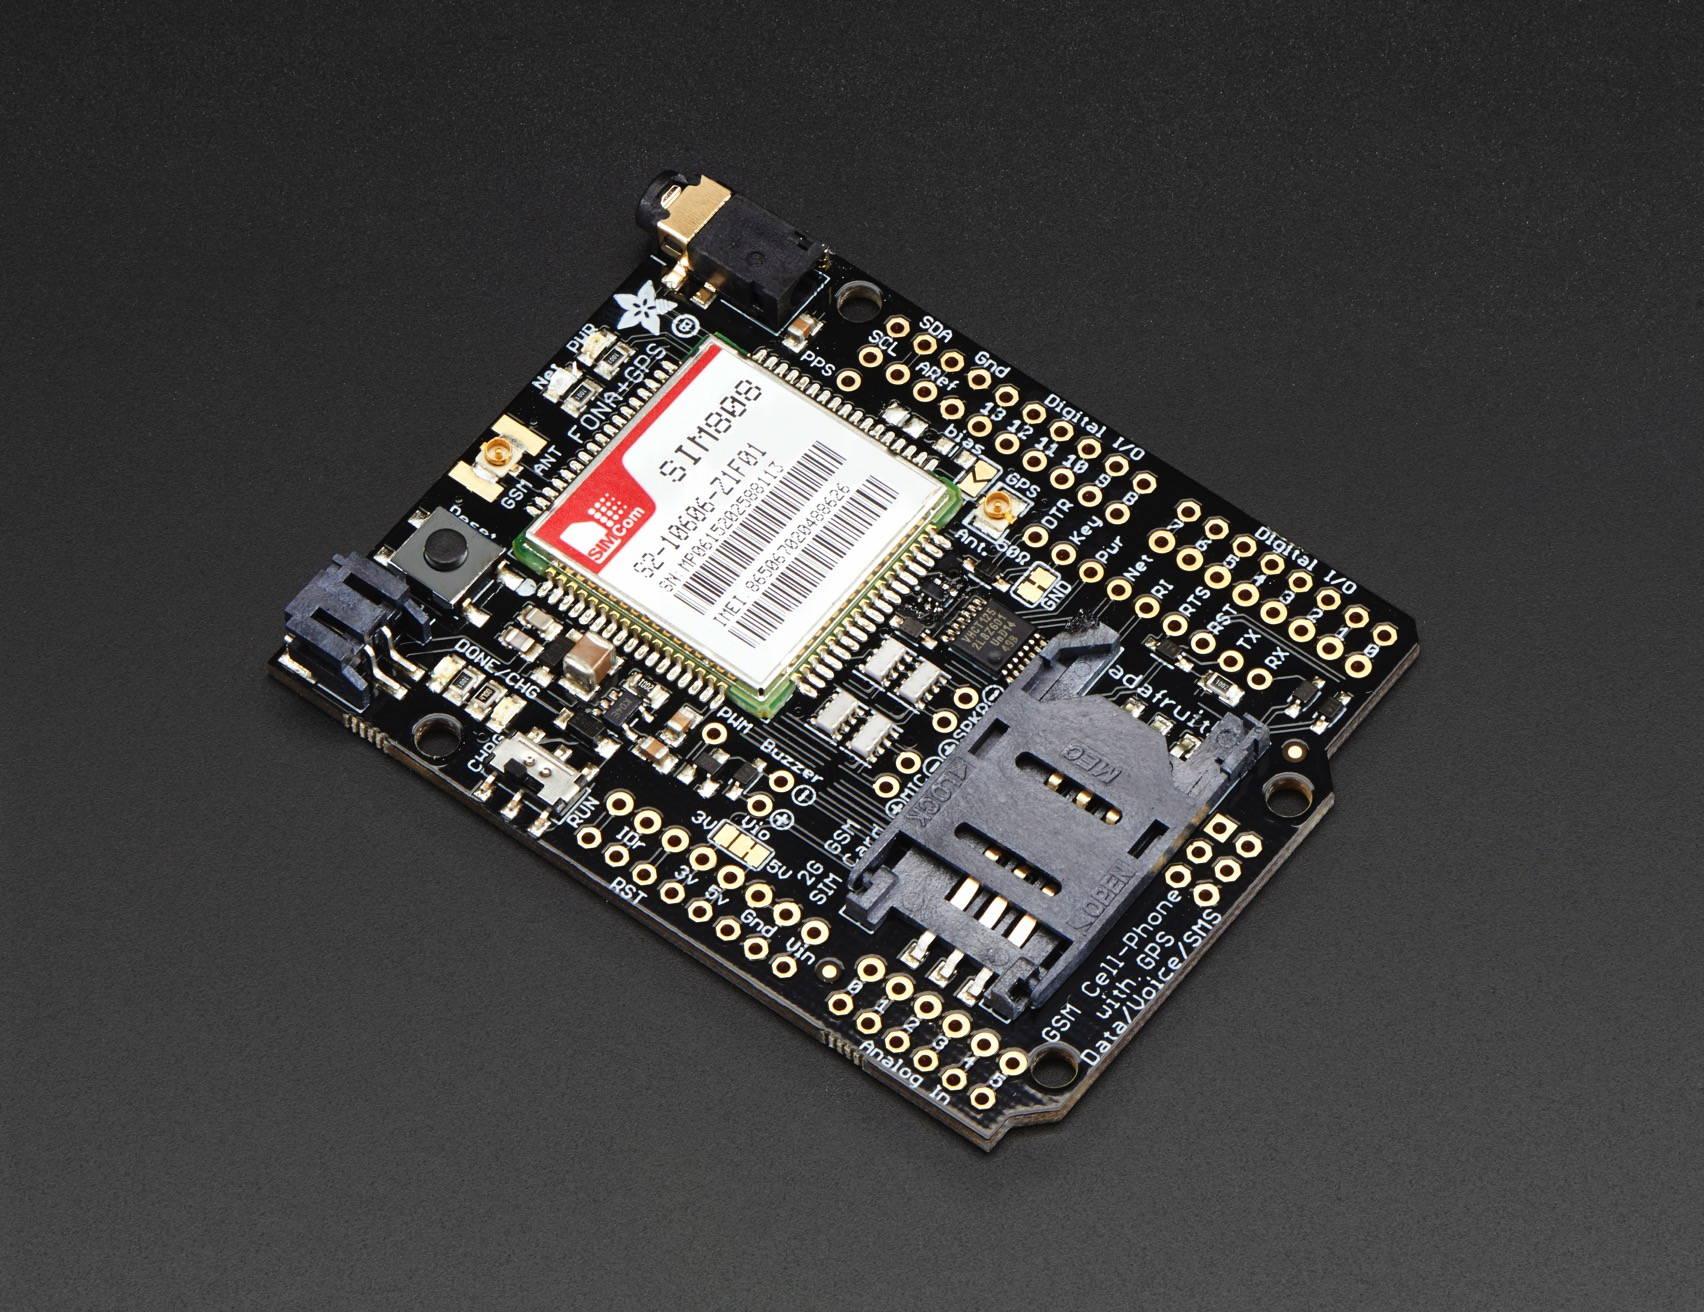 Adafruit Fona 808 Shield Mini Cellular Gsm Gps For Arduino Id Charger Wiring Diagram 2636 4995 Industries Unique Fun Diy Electronics And Kits